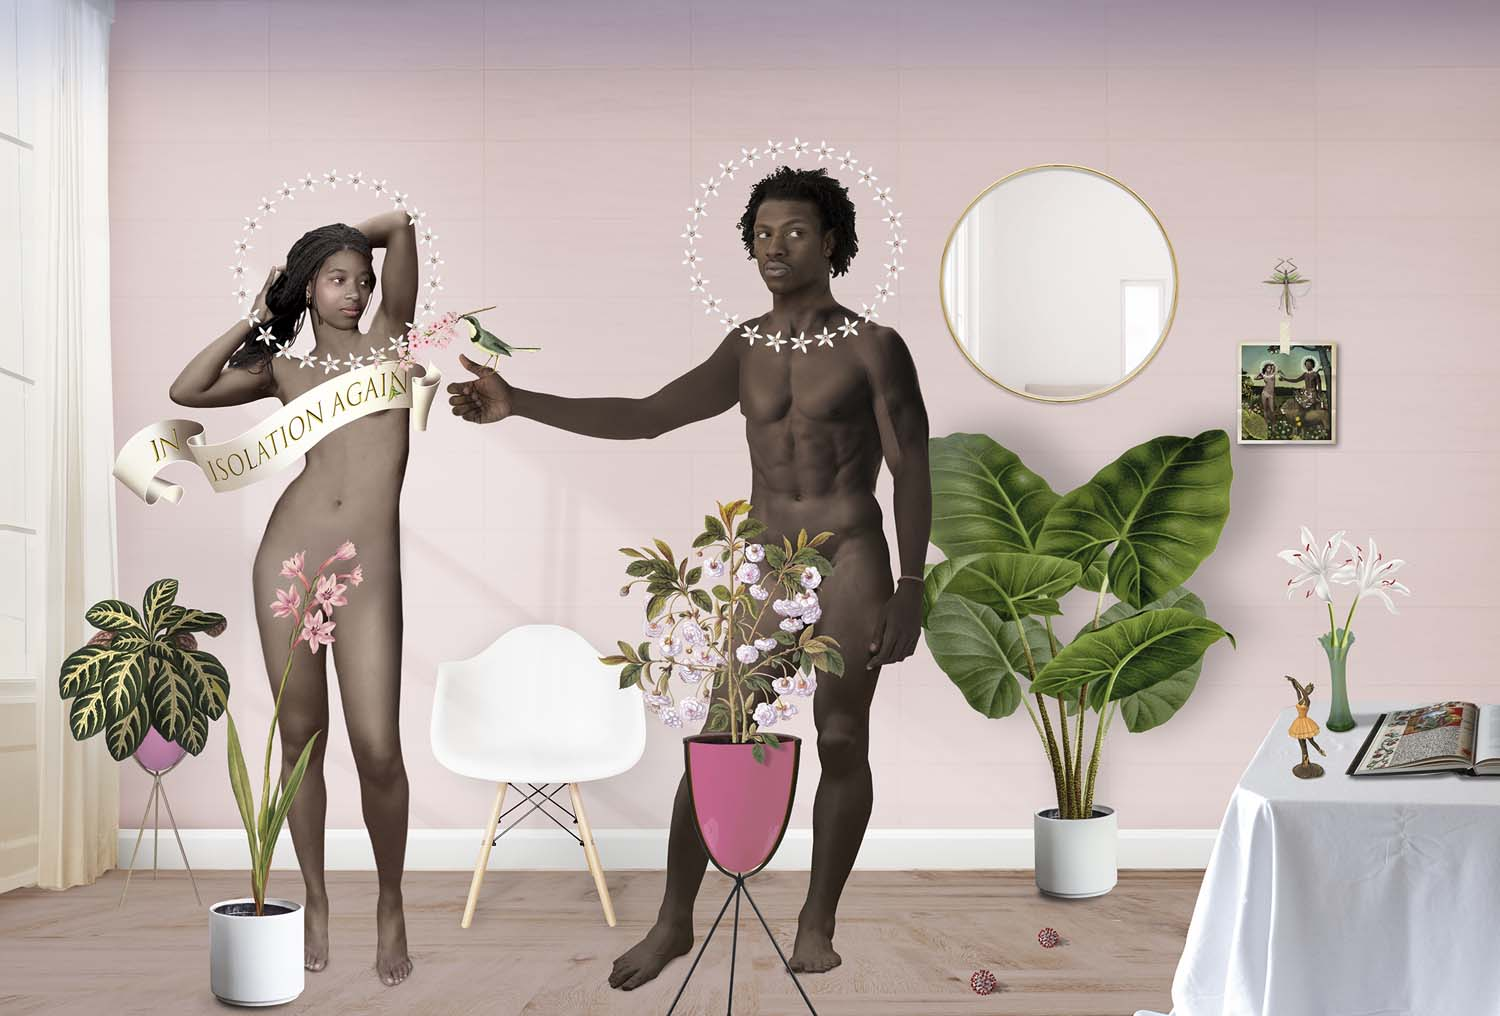 Adam and Eve in the house of Eden